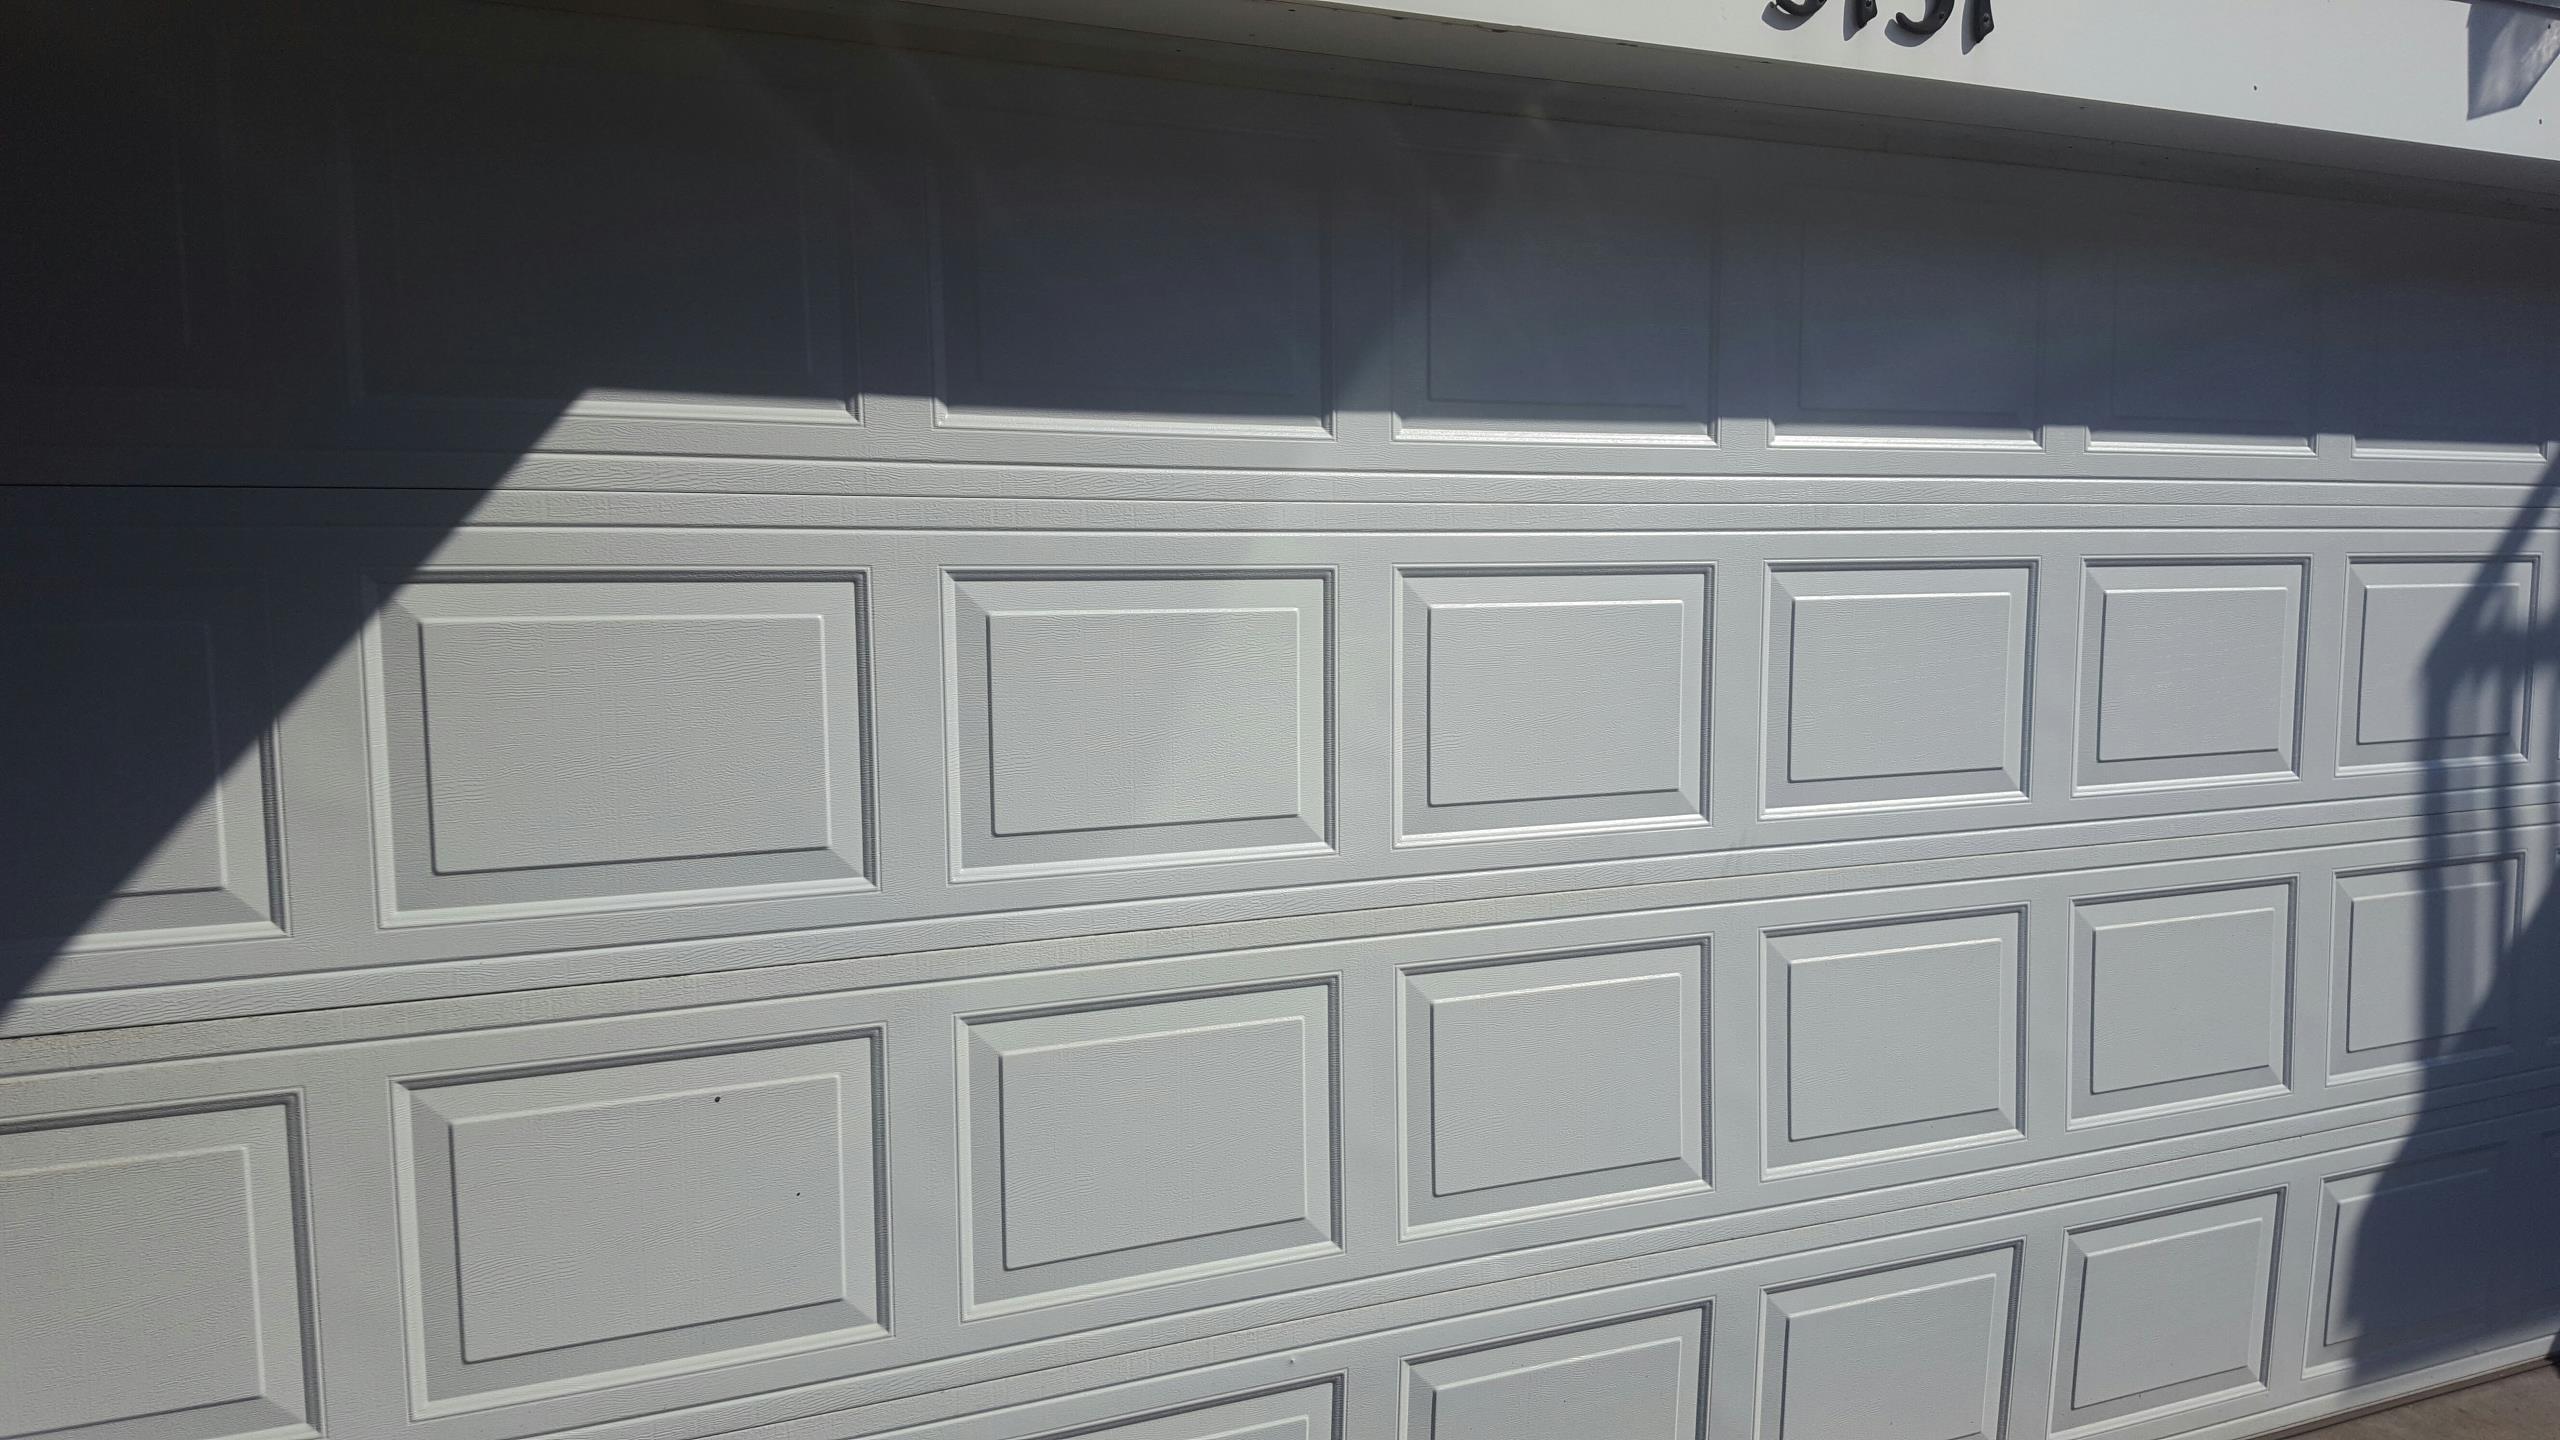 Robbinsdale, MN - Jeremy replaced top section panels on garage door made by north Central